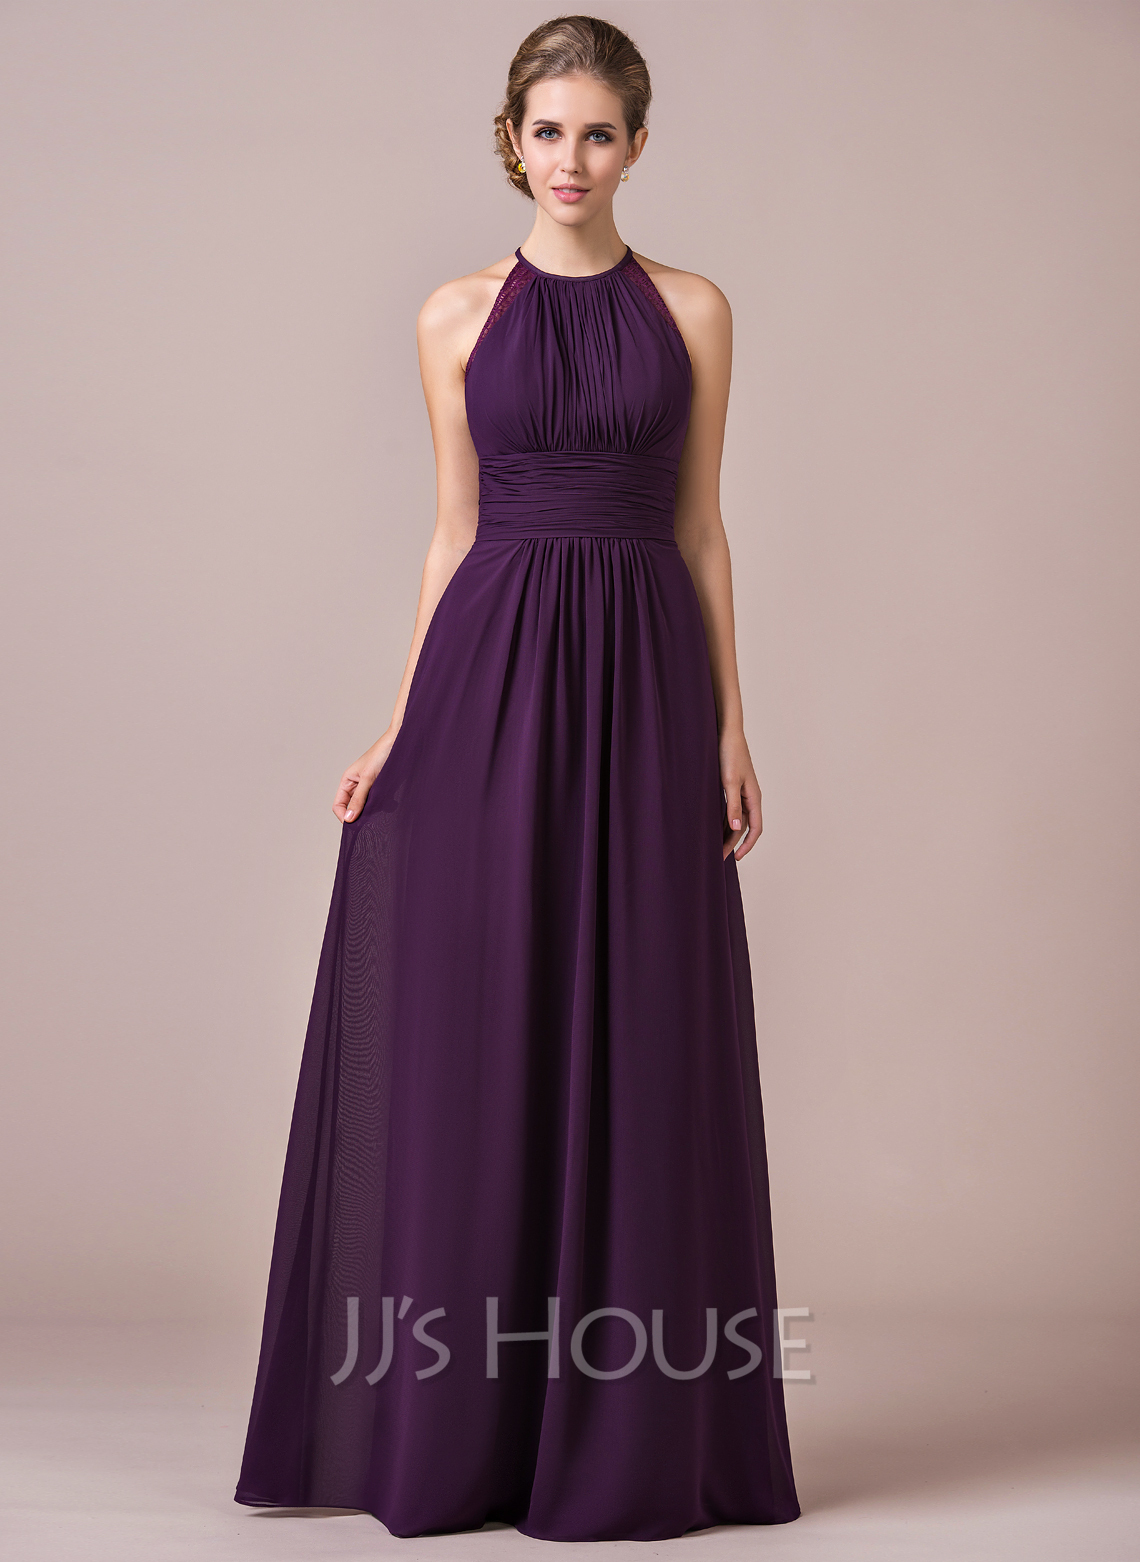 A Line Princess Halter Floor Length Chiffon Bridesmaid Dress With Ruffle Lace Loading Zoom